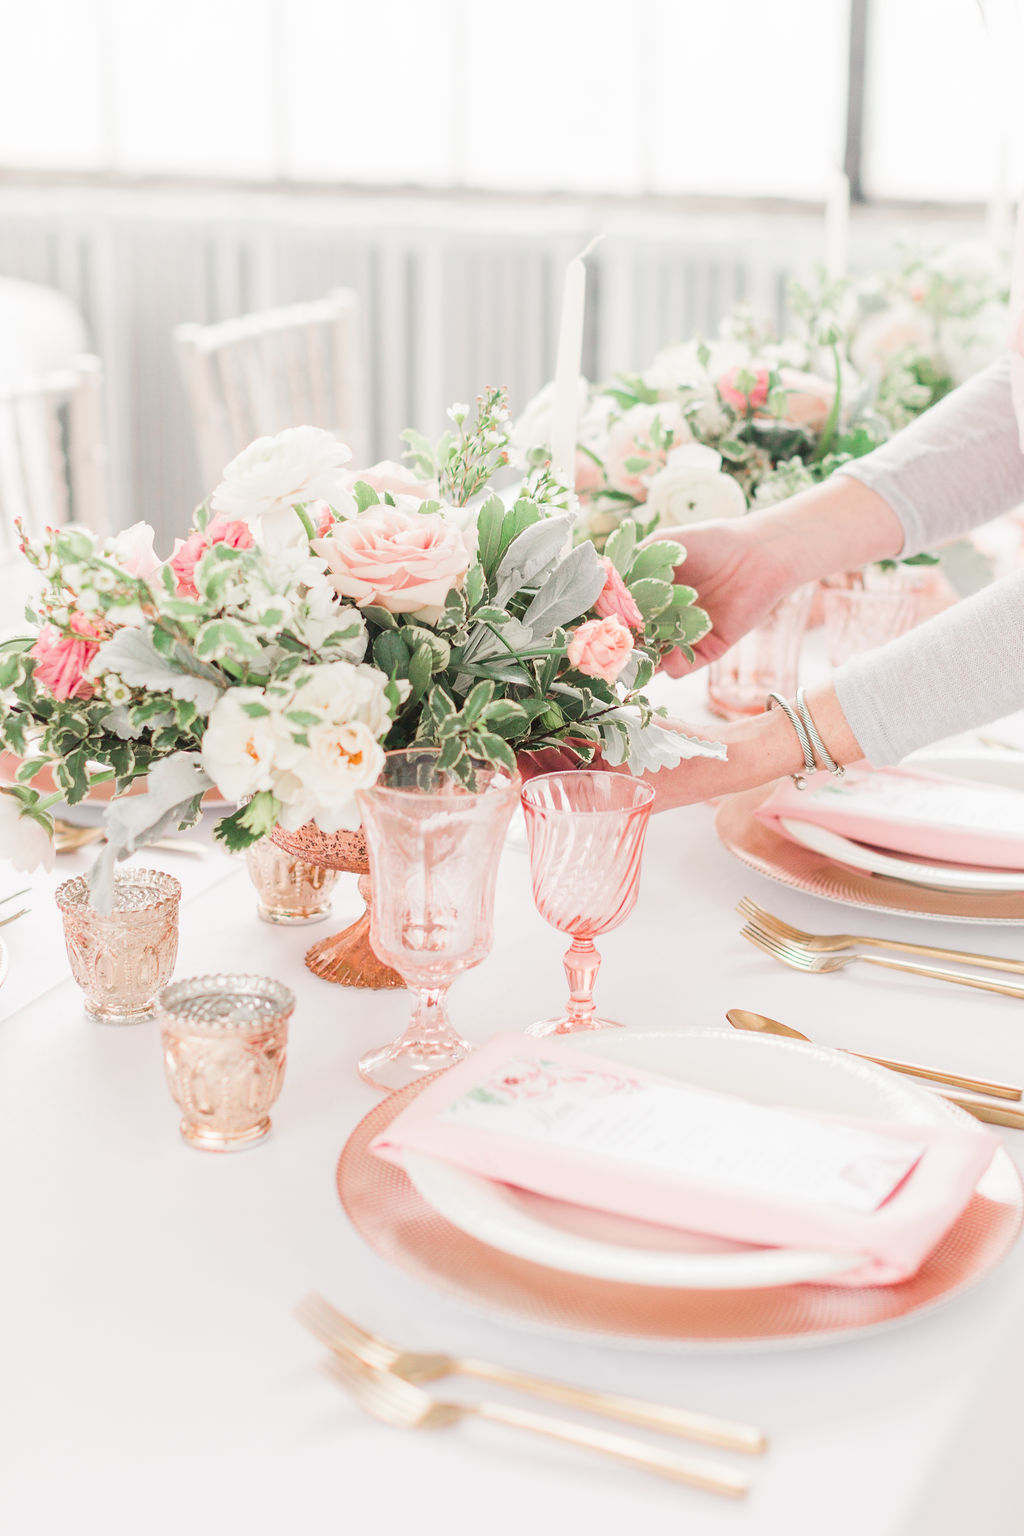 Blush + Bloom Editorial Styled Shoot